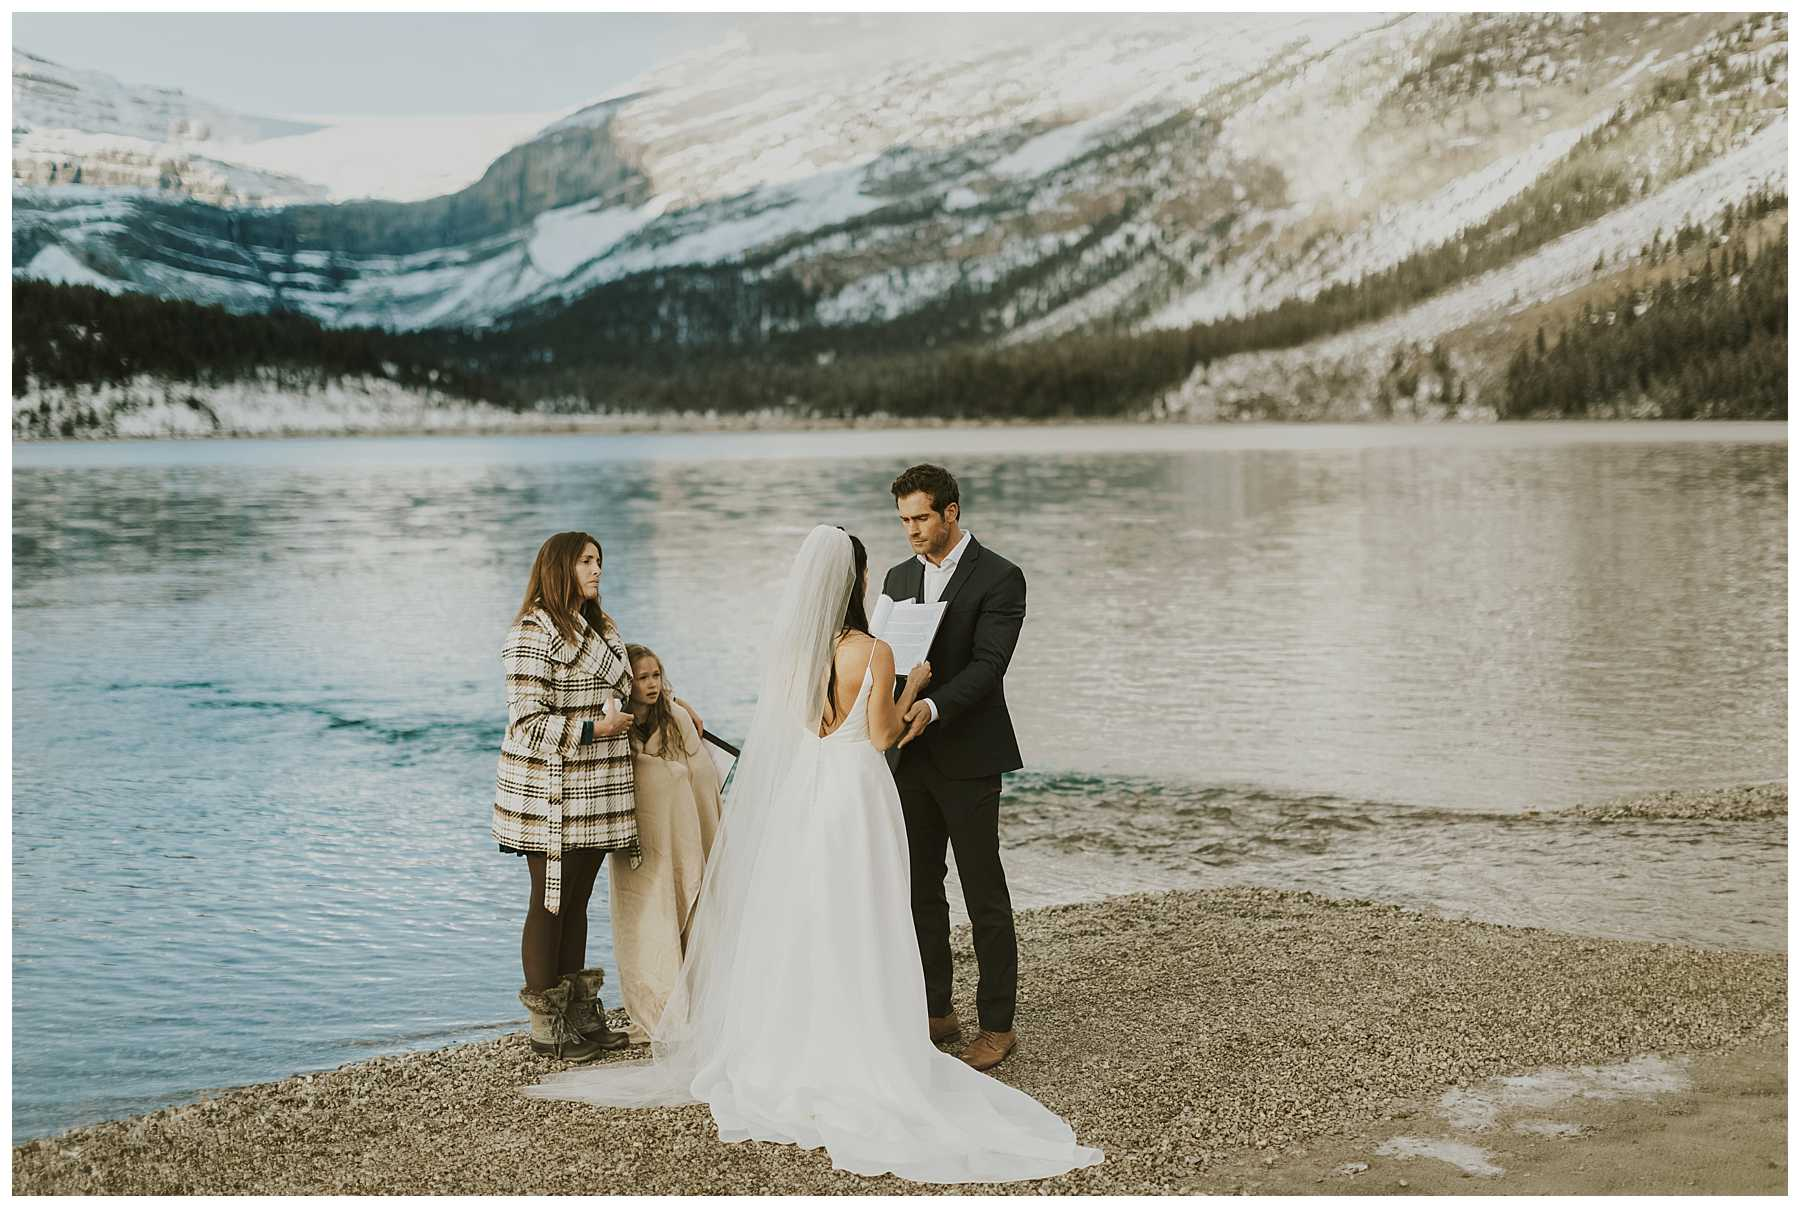 Sunrise Winter Elopement in Banff National Park